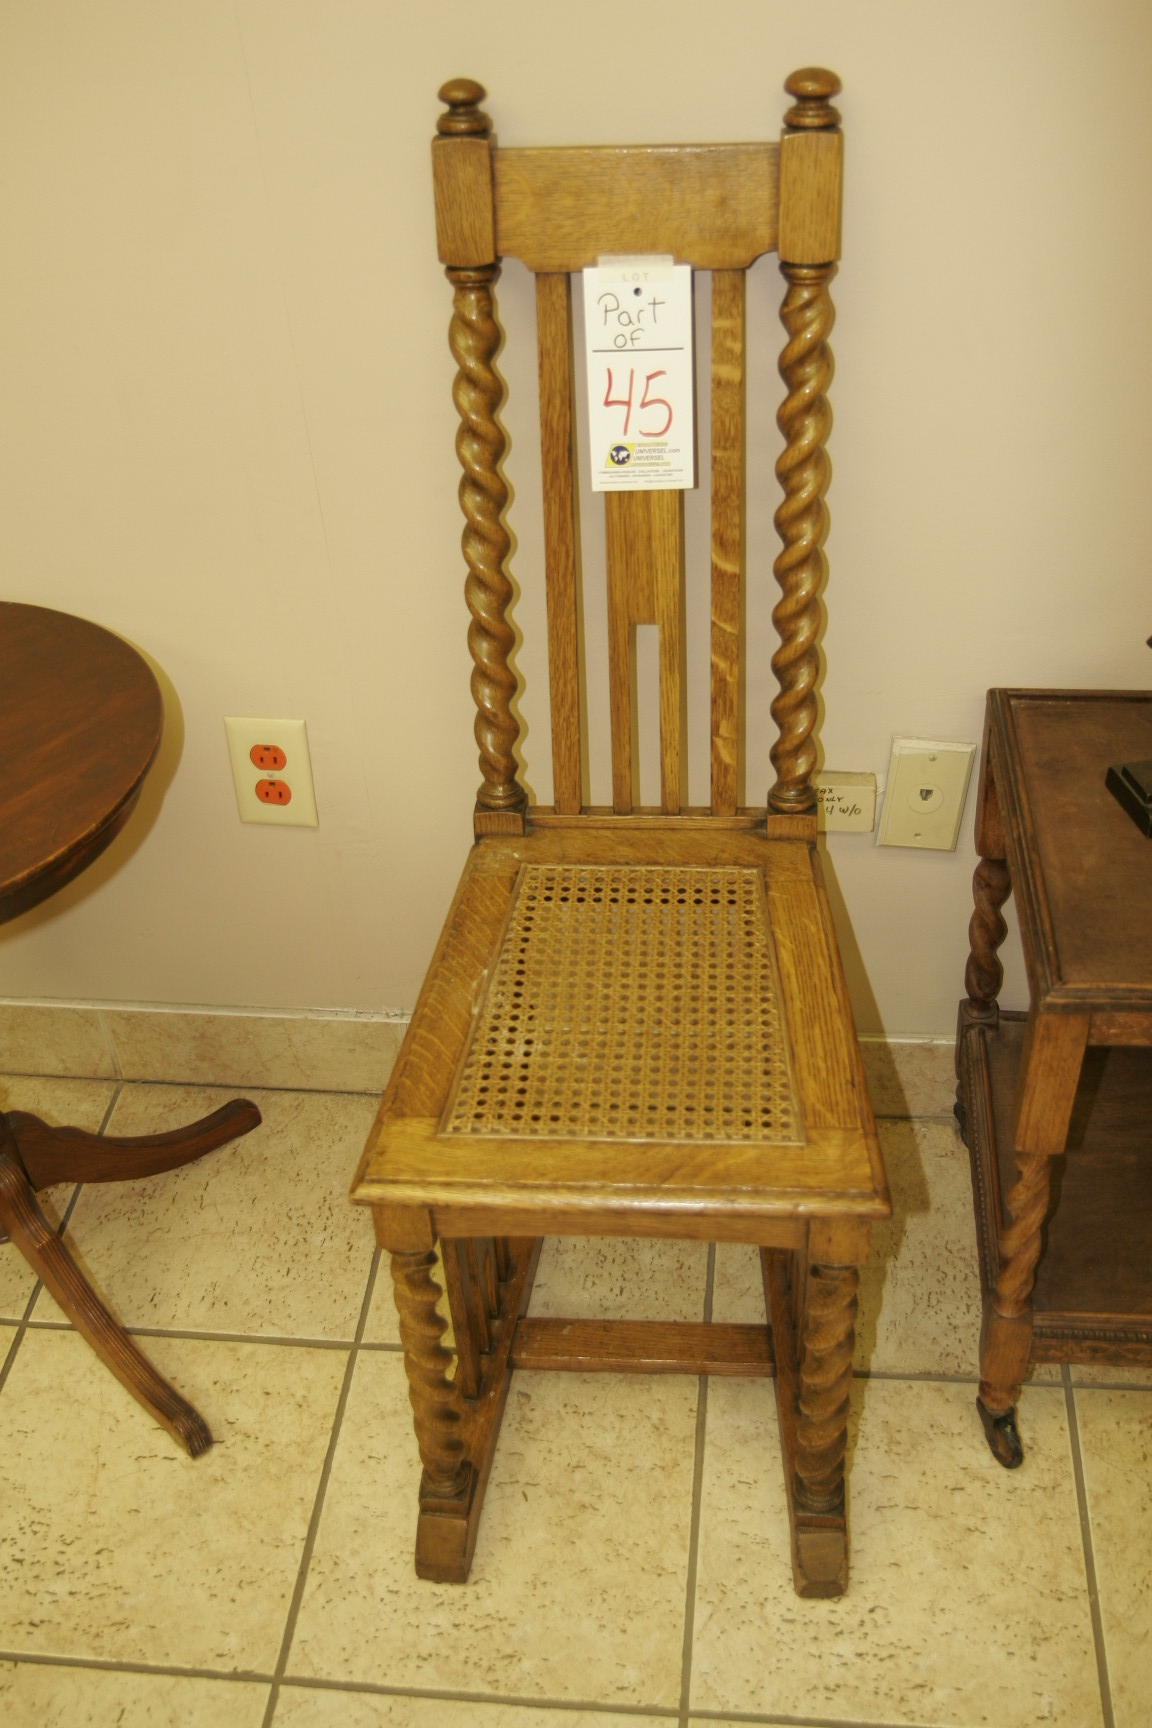 Antique Chairs - Image 2 of 2